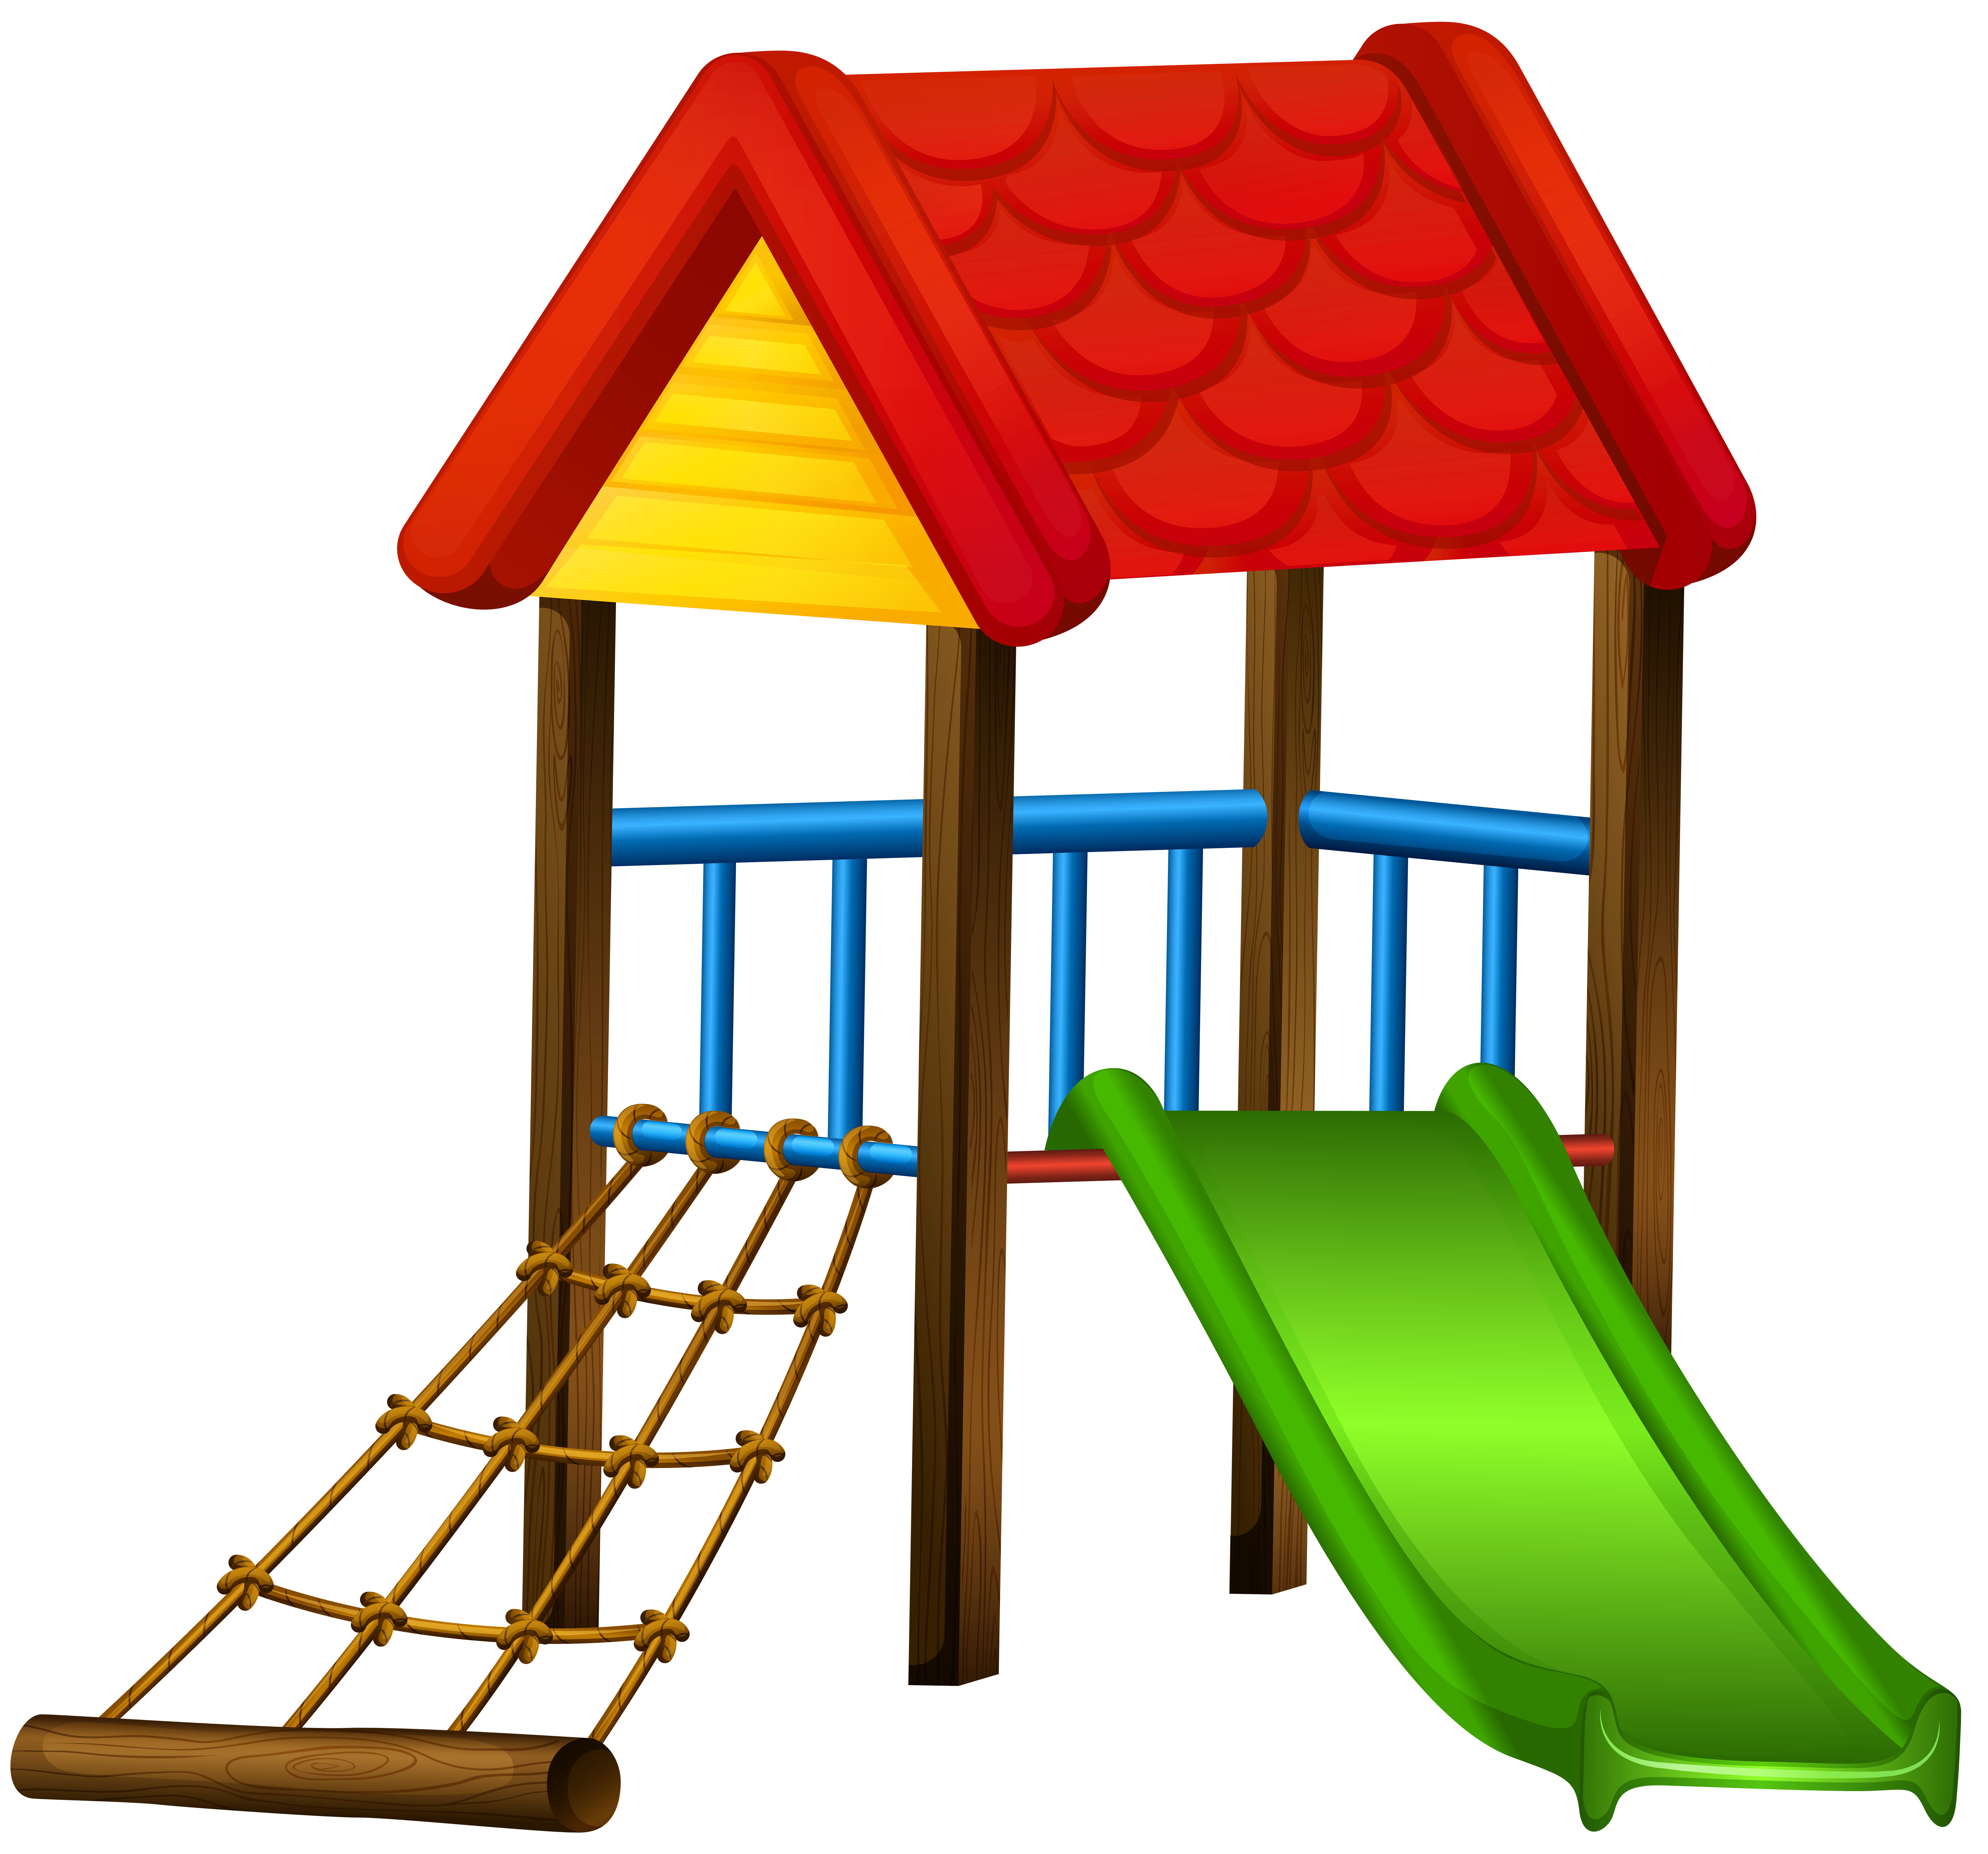 playground clipart at getdrawings com free for personal use rh getdrawings com playground clipart images playground clipart free